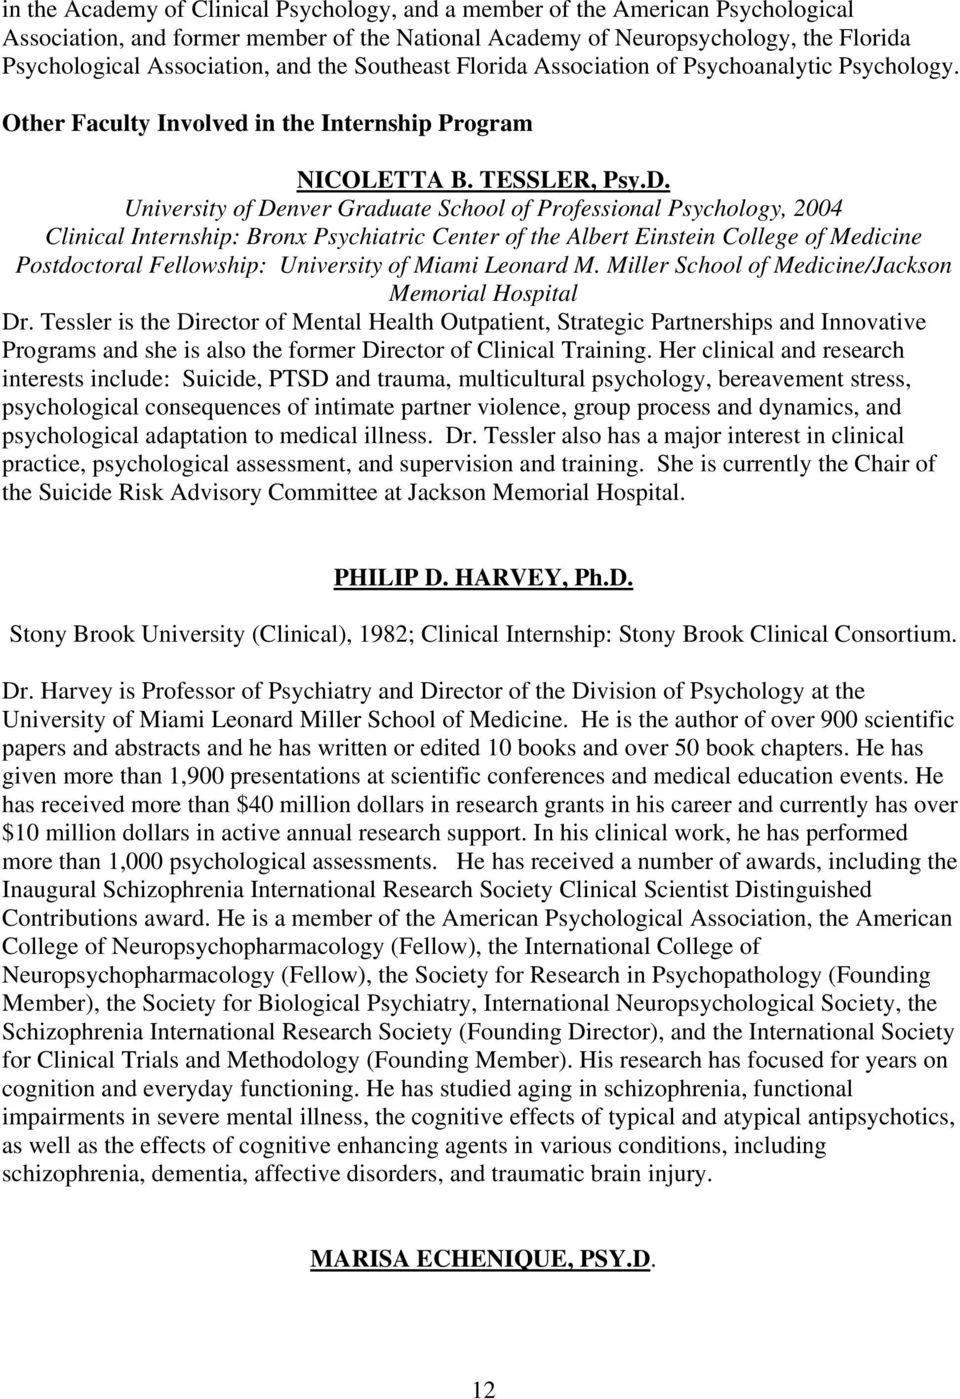 University of Denver Graduate School of Professional Psychology, 2004 Clinical Internship: Bronx Psychiatric Center of the Albert Einstein College of Medicine Postdoctoral Fellowship: University of